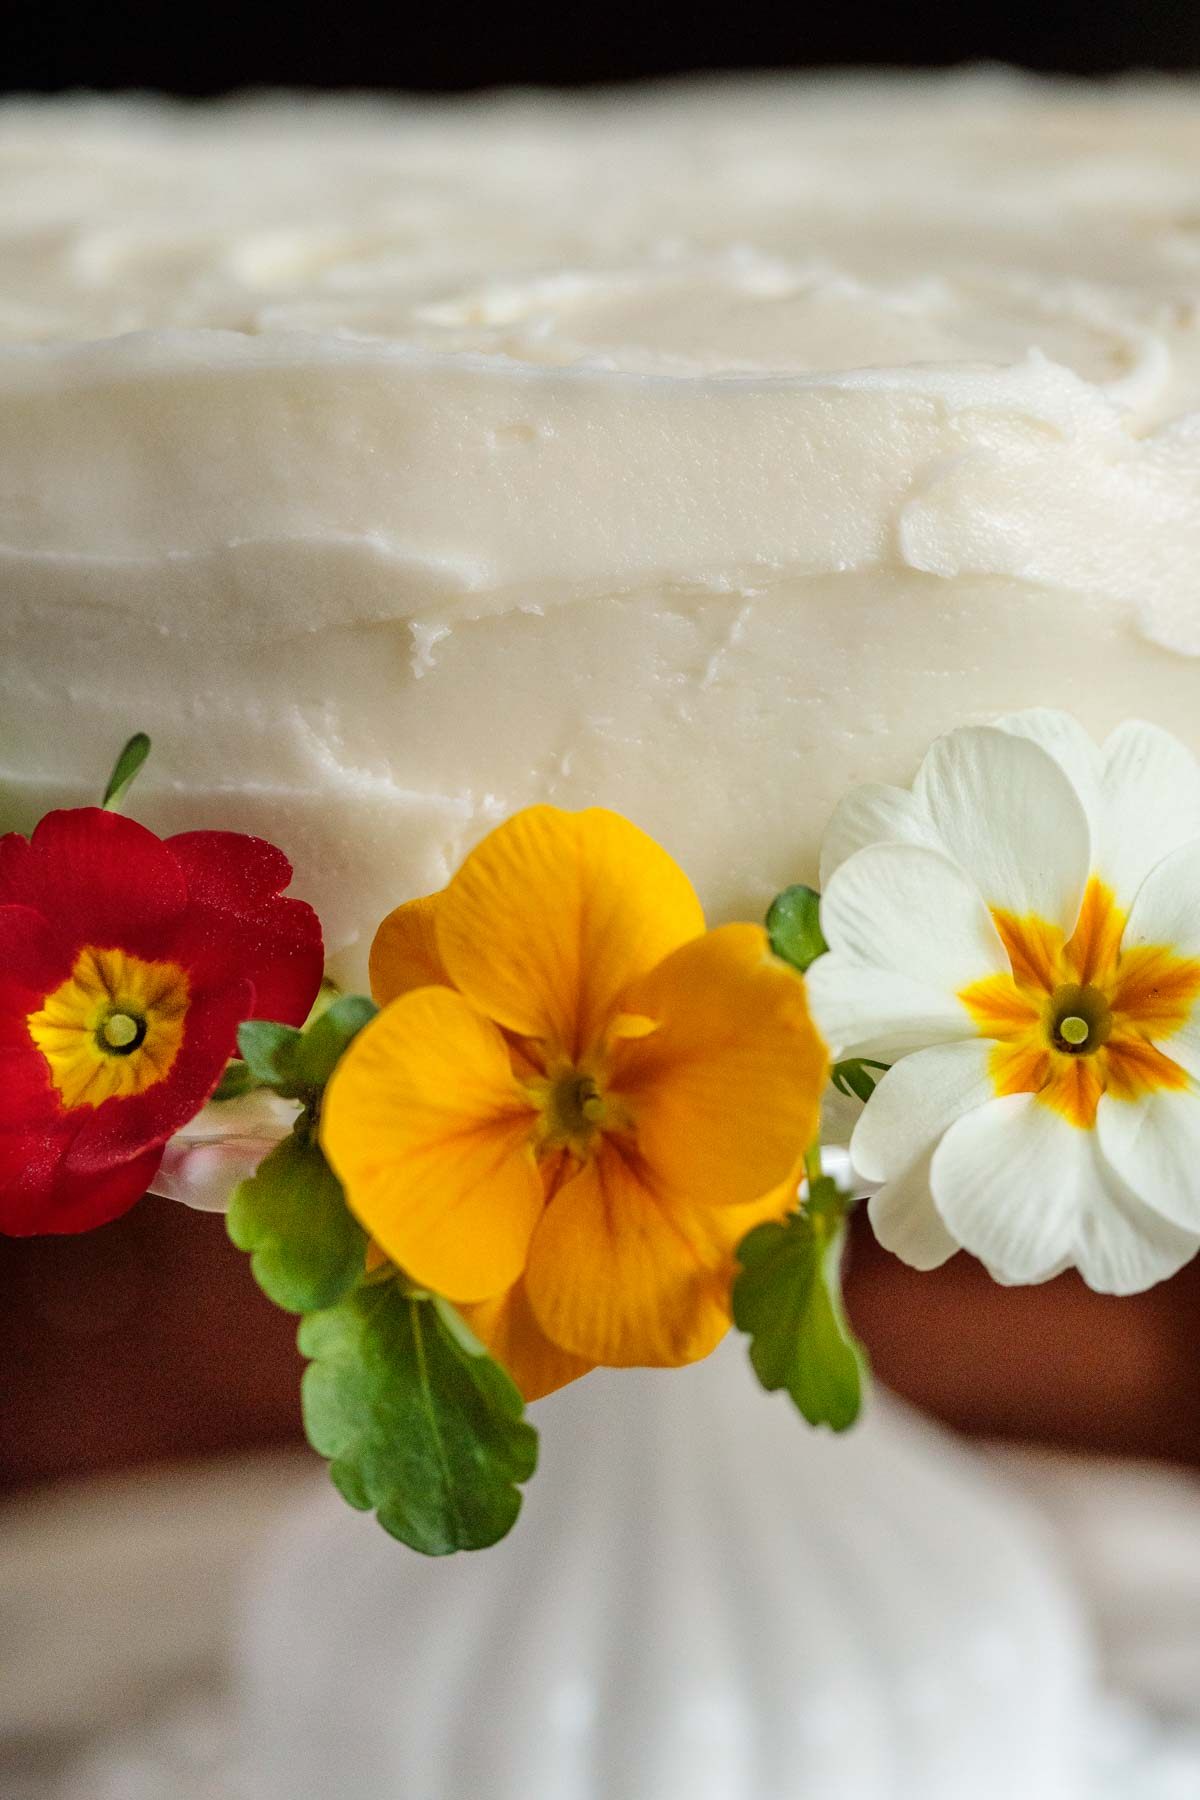 Ultra closeup photo of edible flowers (pansies and primroses) decorating the side of an Italian Lemon Ricotta Cake.